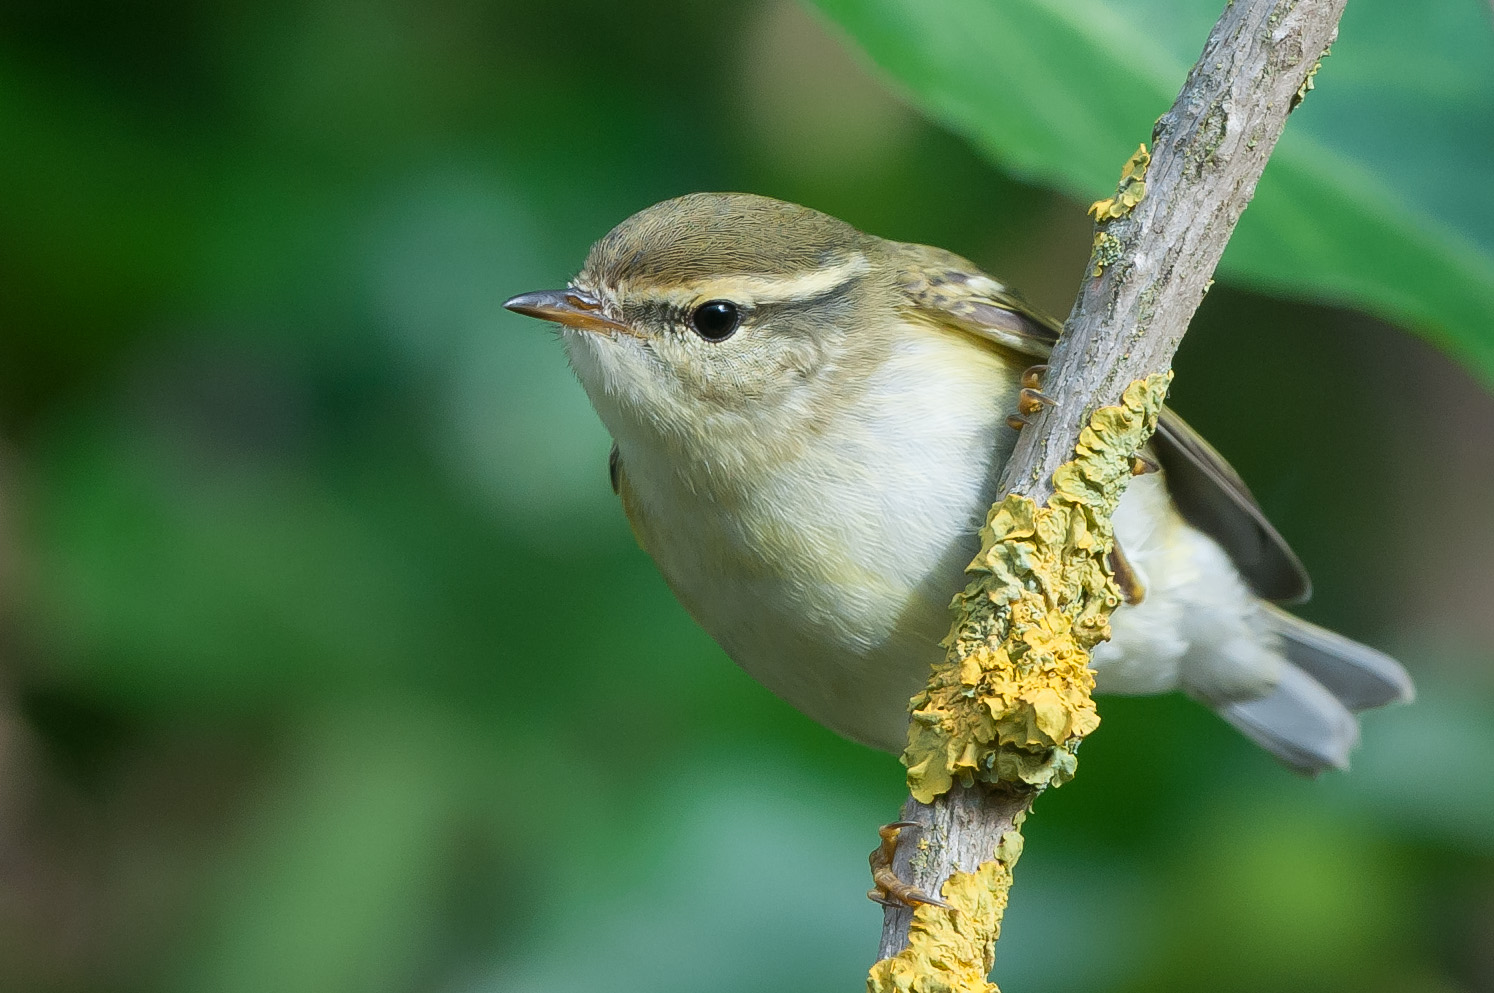 This yellow browed warbler posed nicely during its stay in October at the Crown and Anchor car park in Kilnsea.